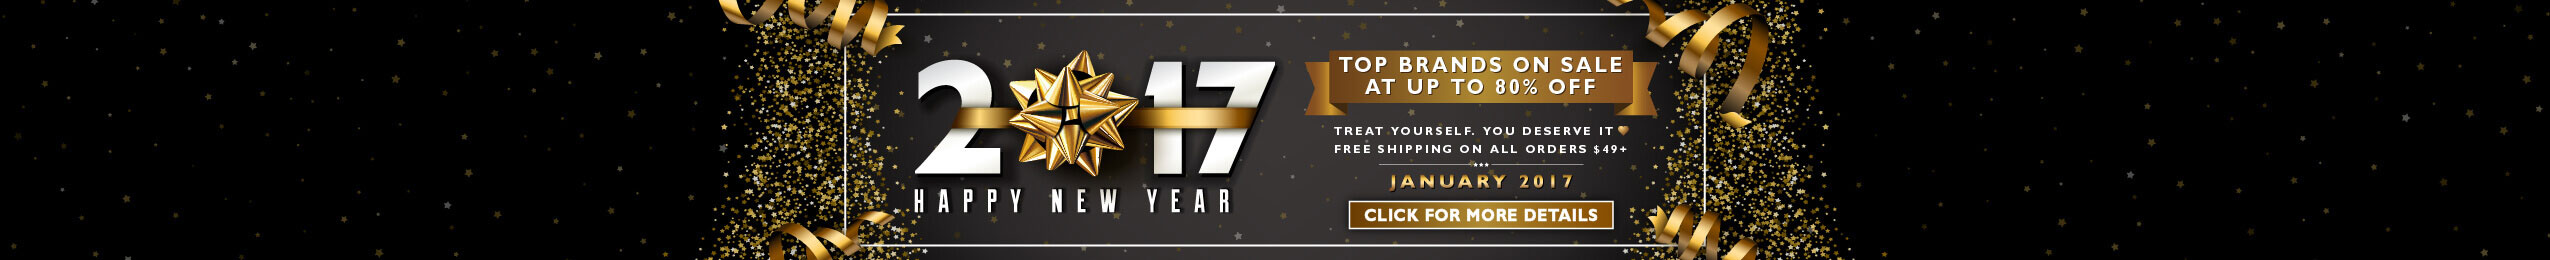 HUSH Canada - New Year's Promotion Up to 80% off Top Brands